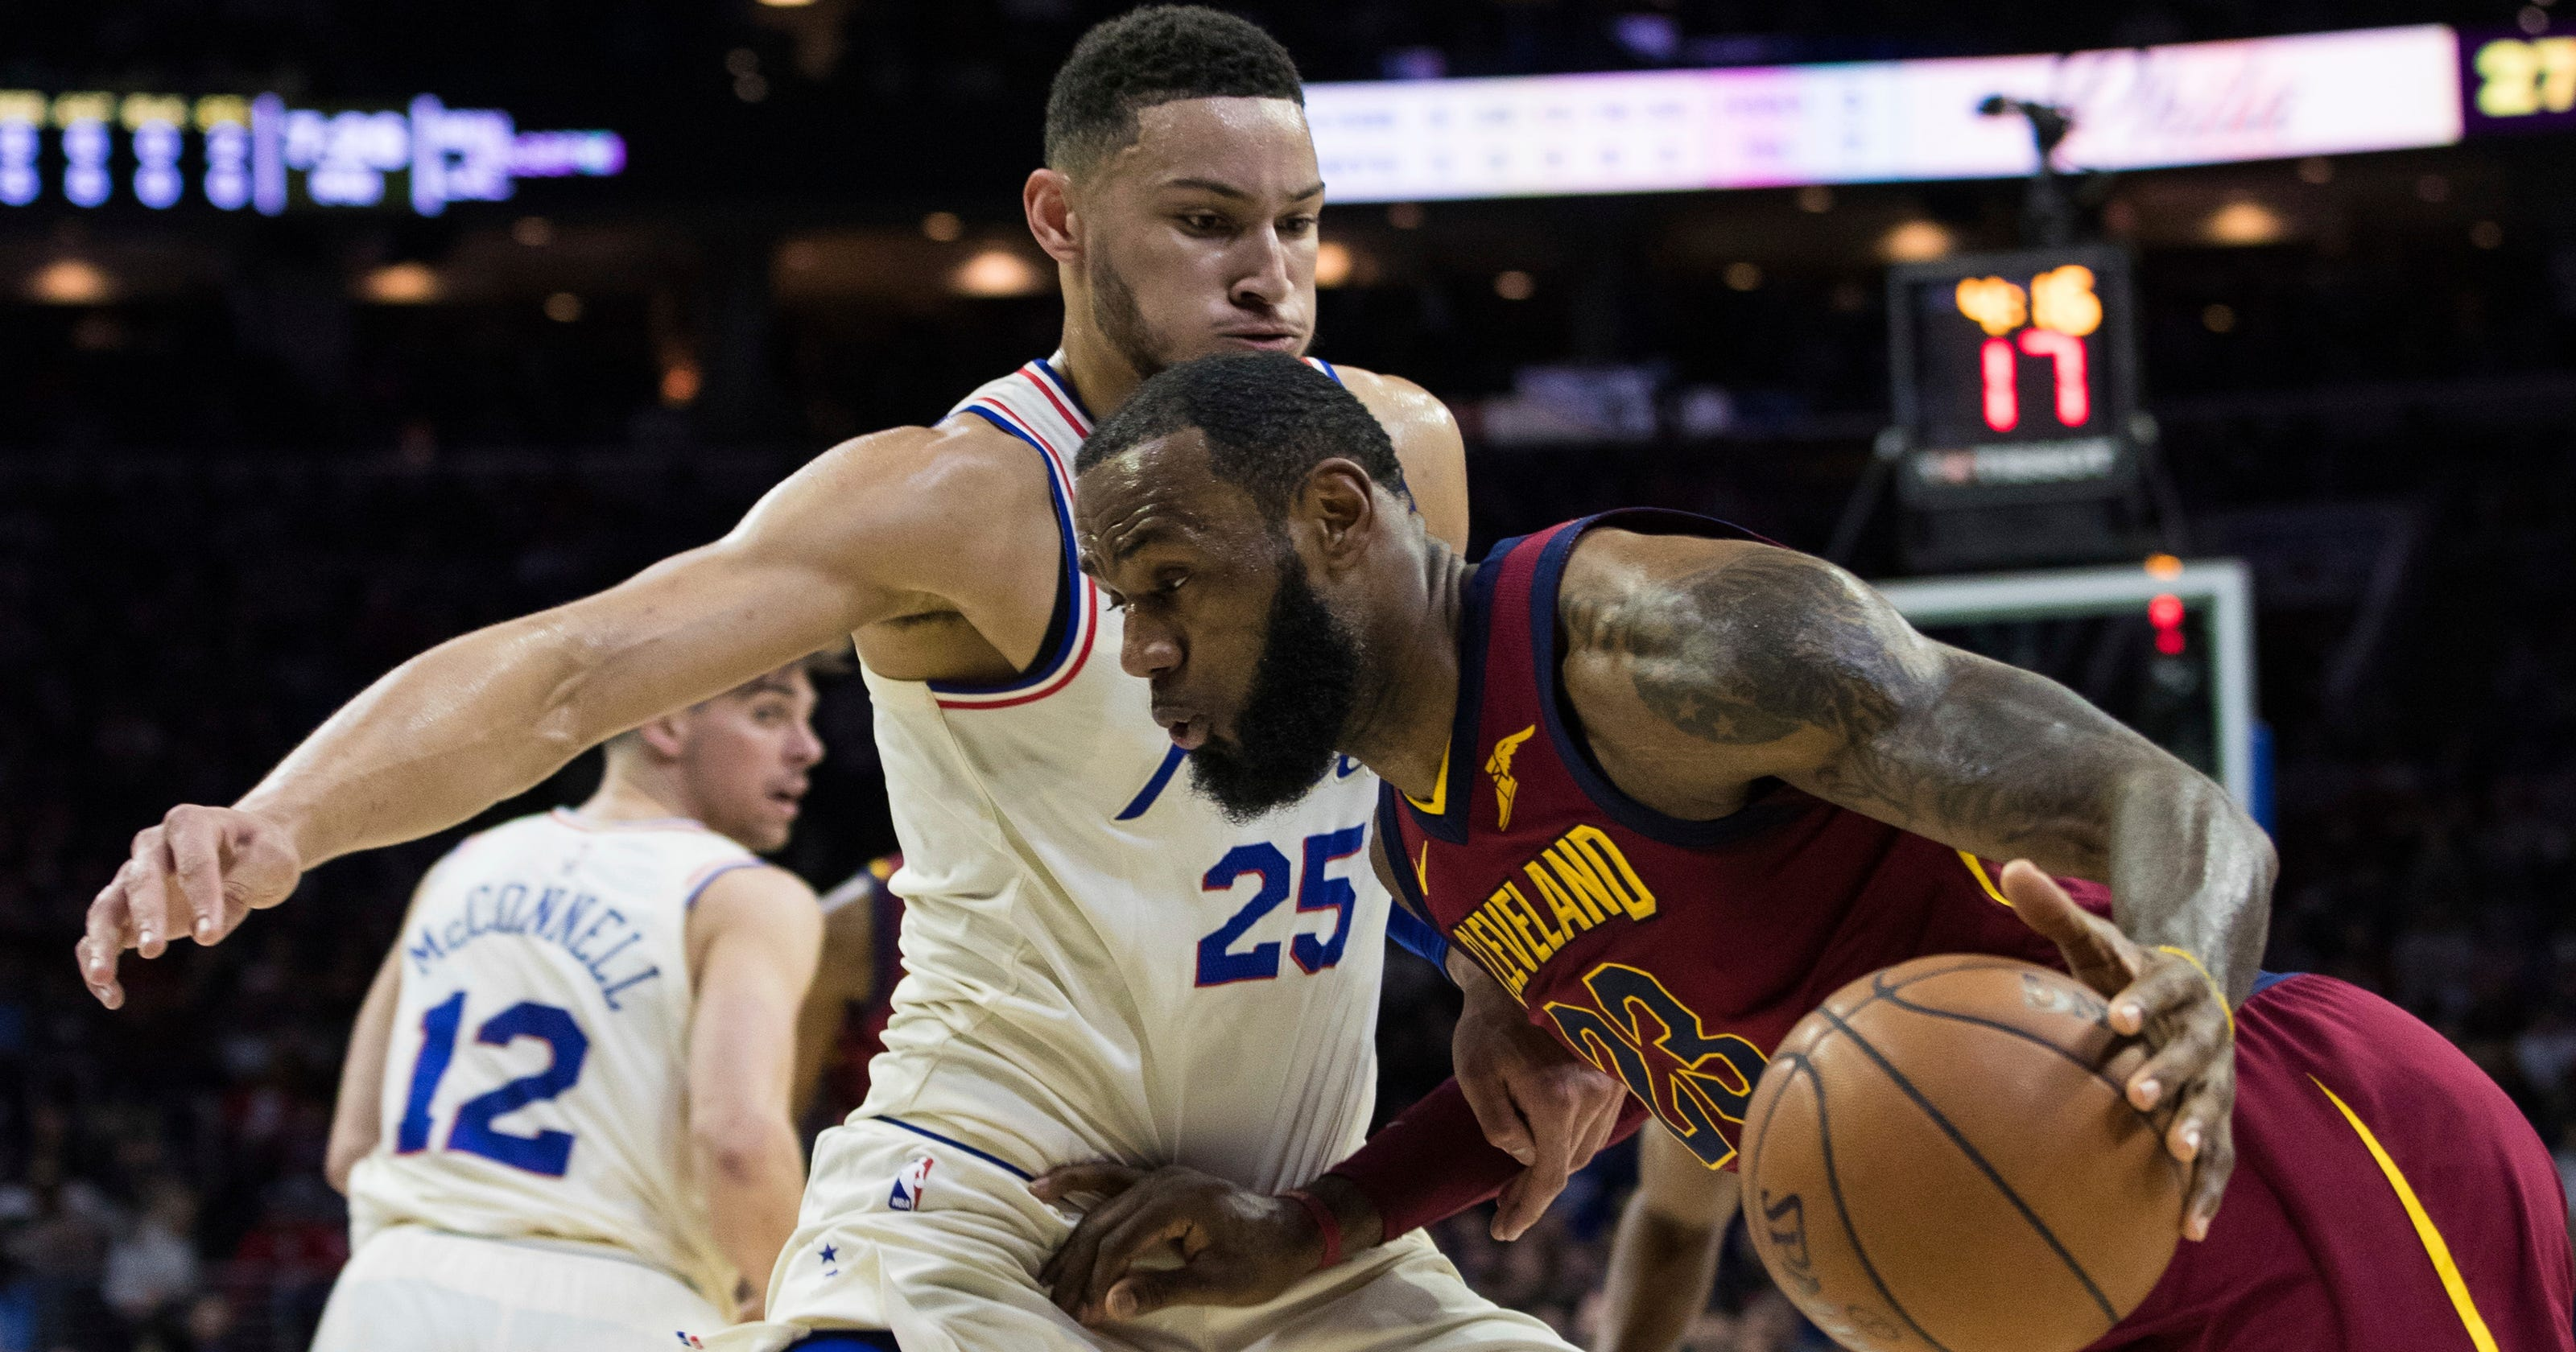 161200682d4 LeBron shows Sixers his greatness  Simmons shows more in narrow win